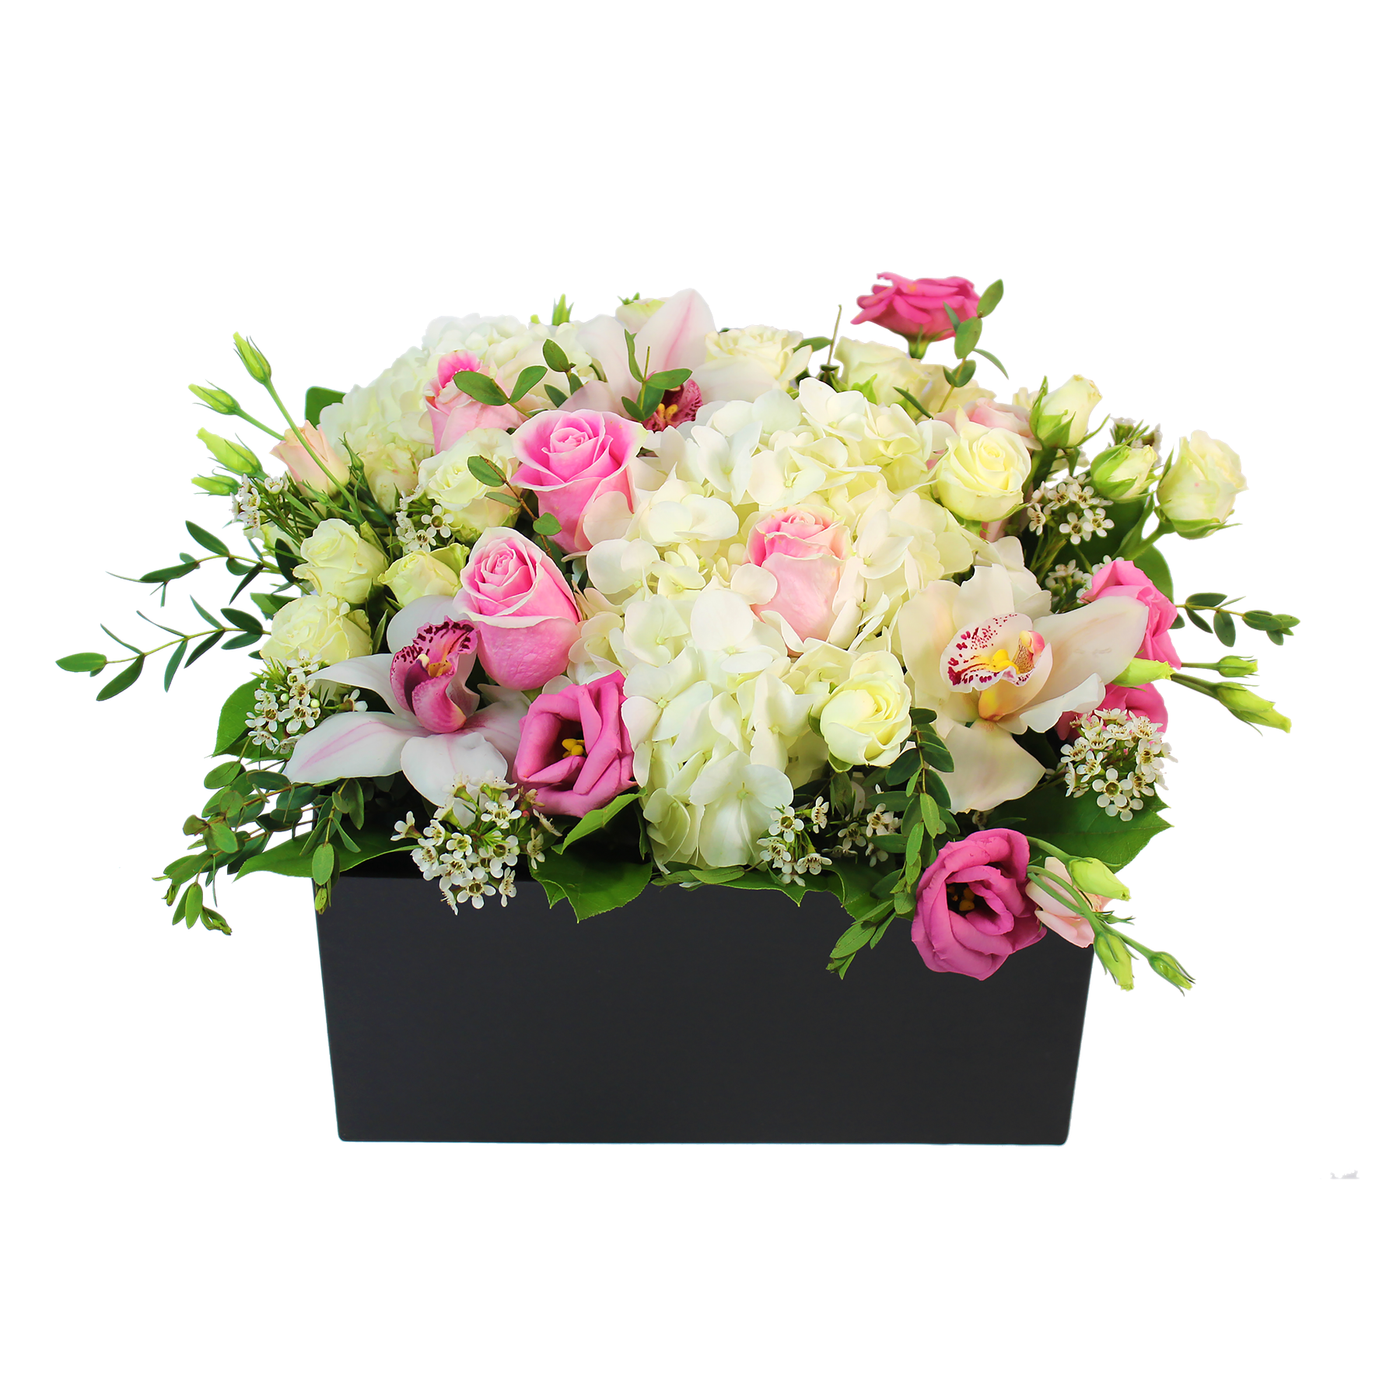 Hat Box Florals - Large